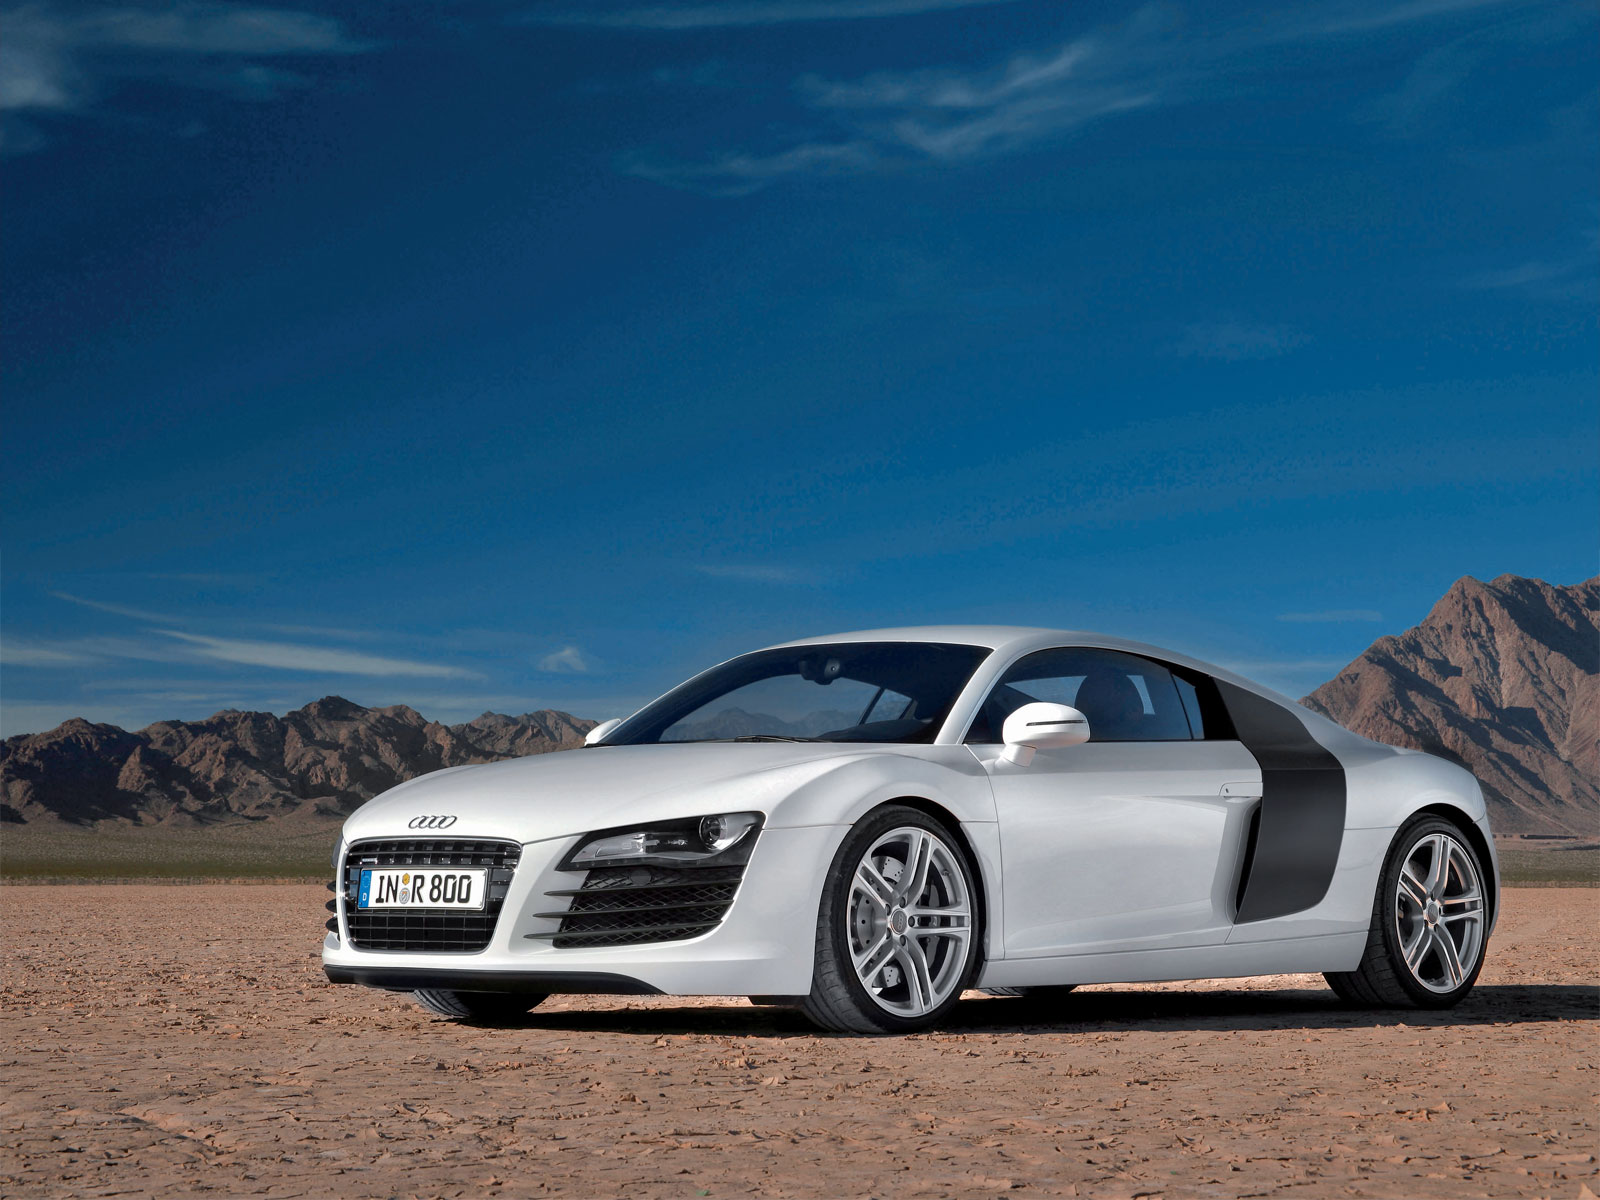 Top 100 Audi Wallpapers audi-r8-car-desktop-wallpaper – RealityPod | Gadgets